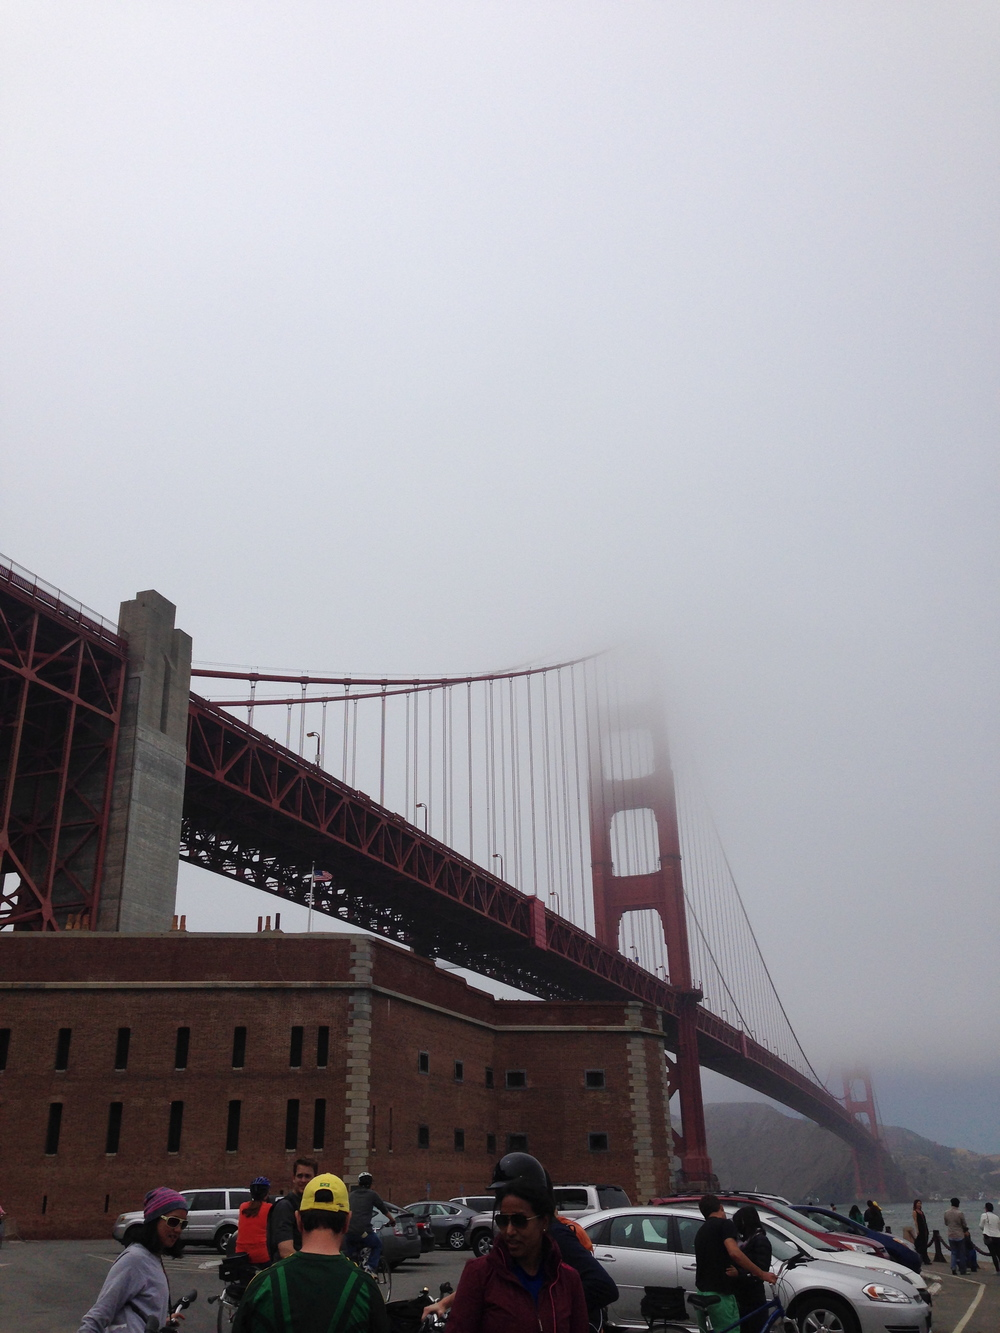 It was so foggy out we couldn't even see the top of the bridge